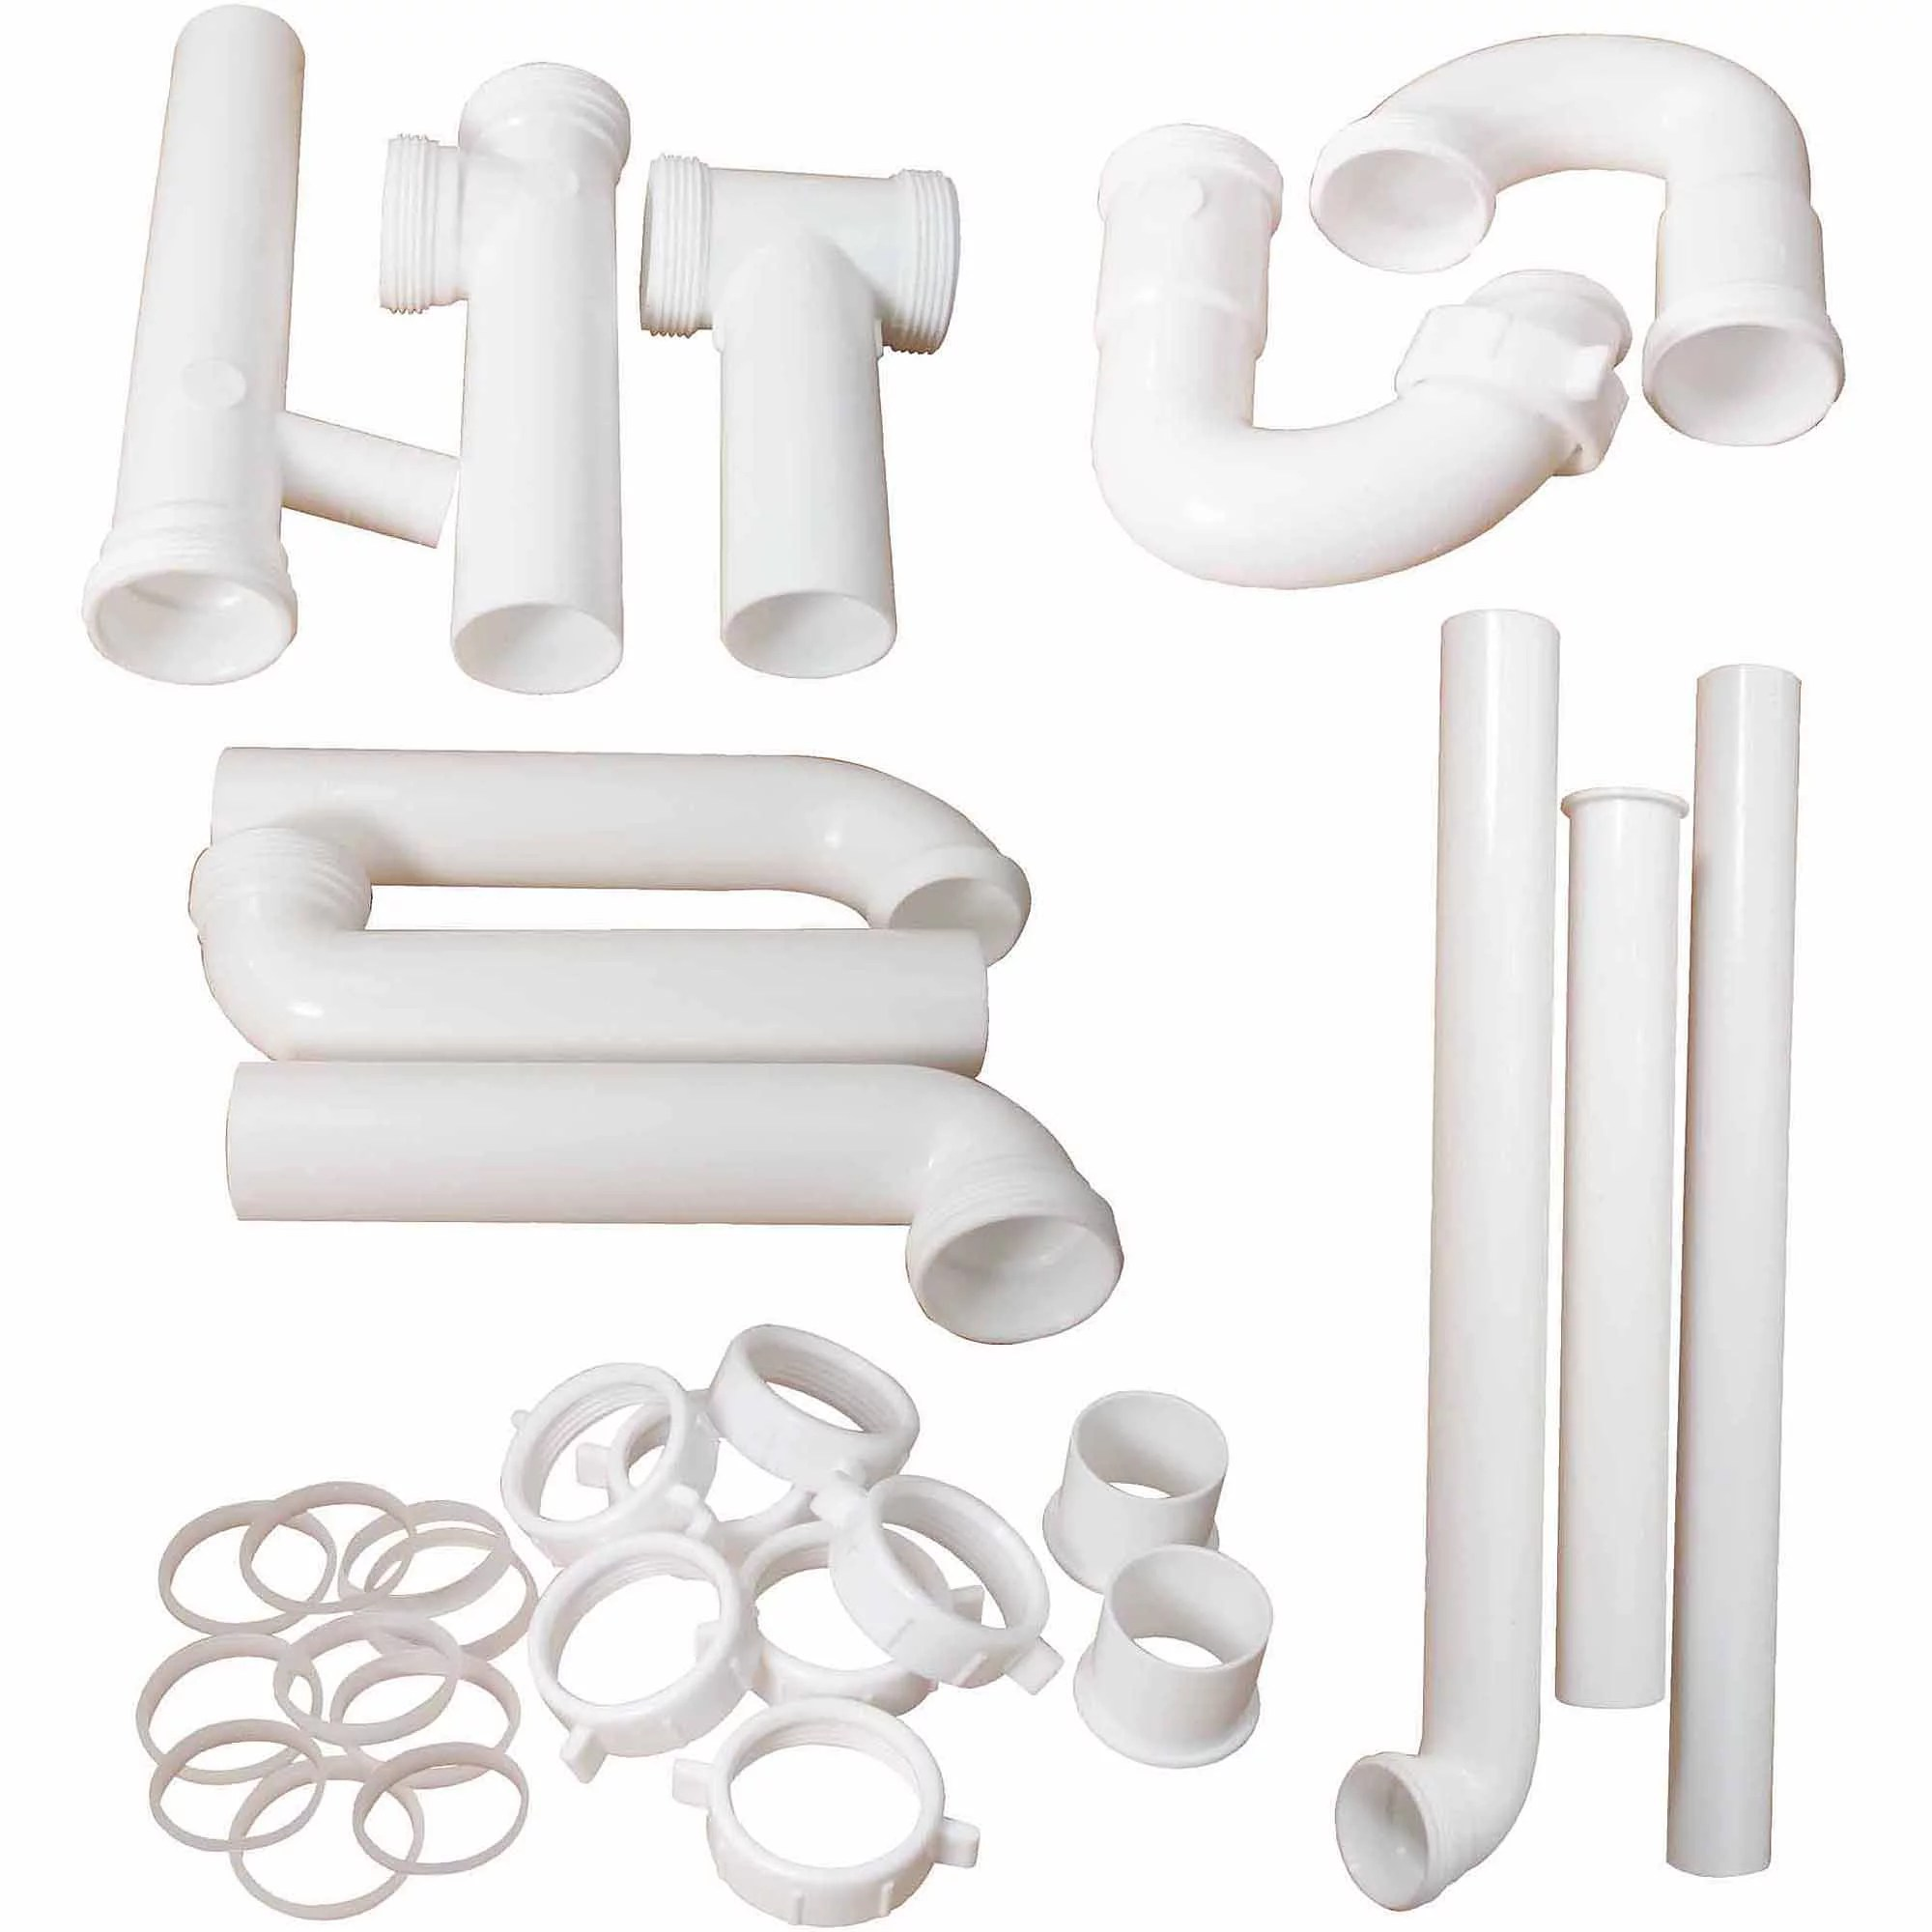 peerless cpvc universal kitchen lav trap kit with 1 1 4 in o d and 1 1 2 in o d drainage